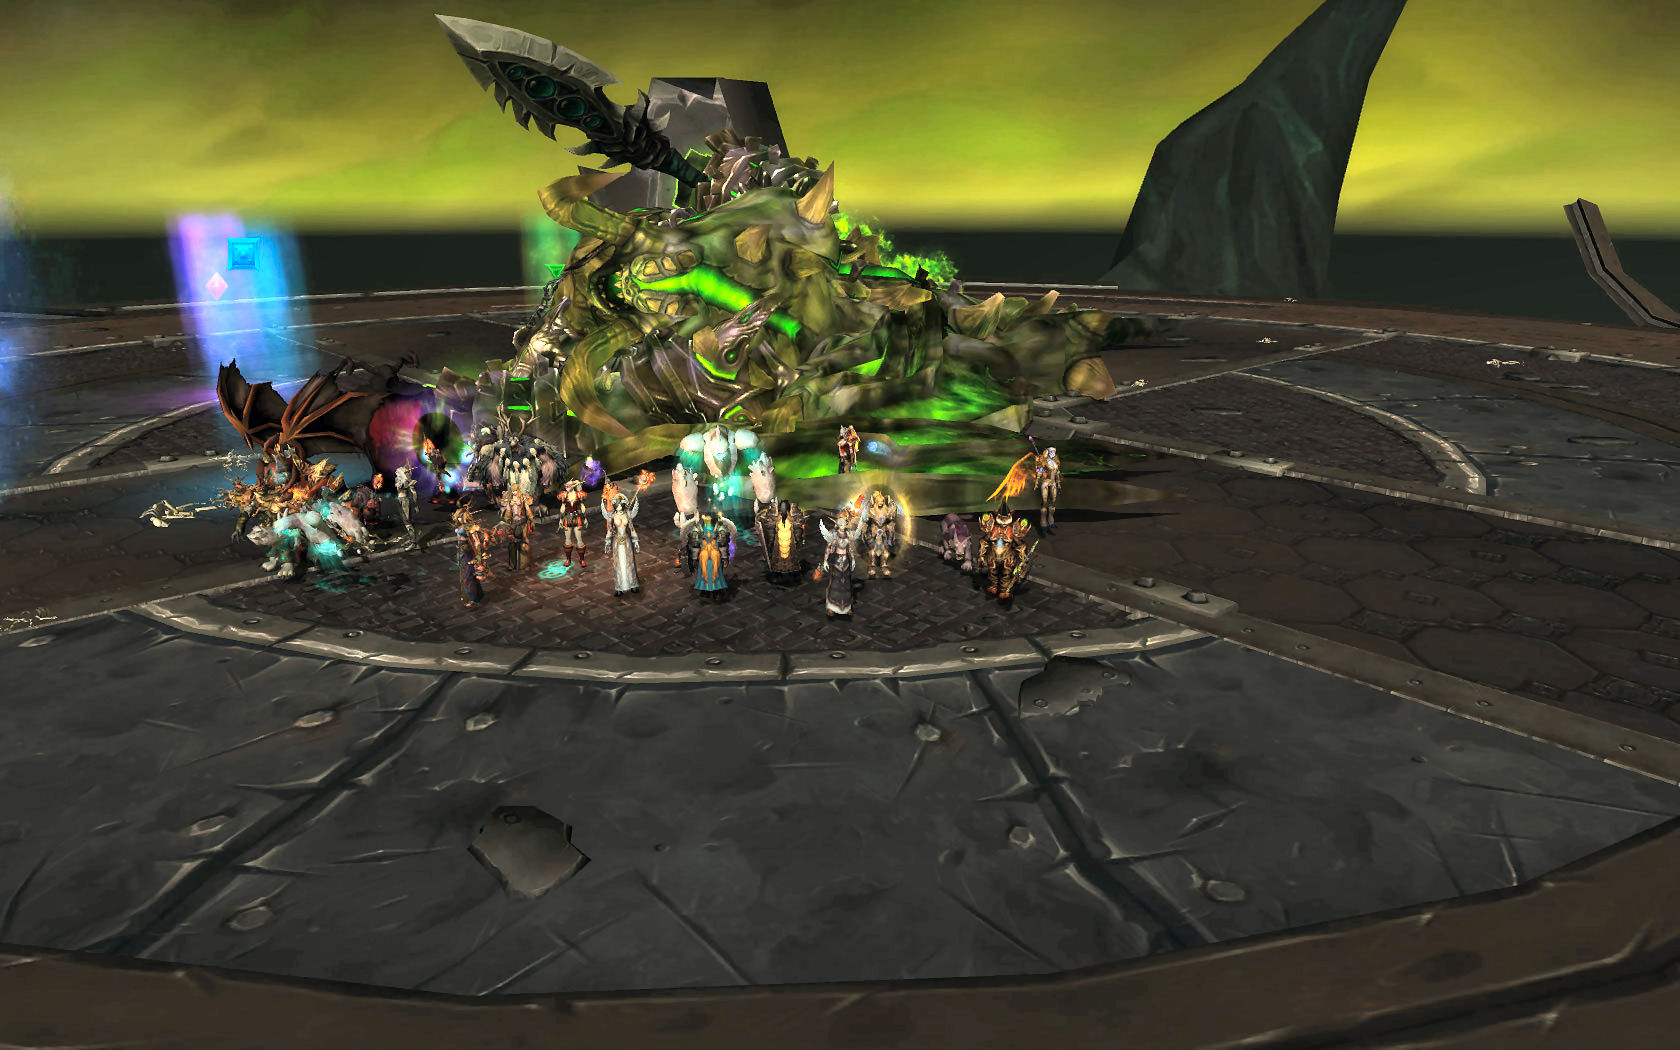 Mannoroth frozen! 1 more to go